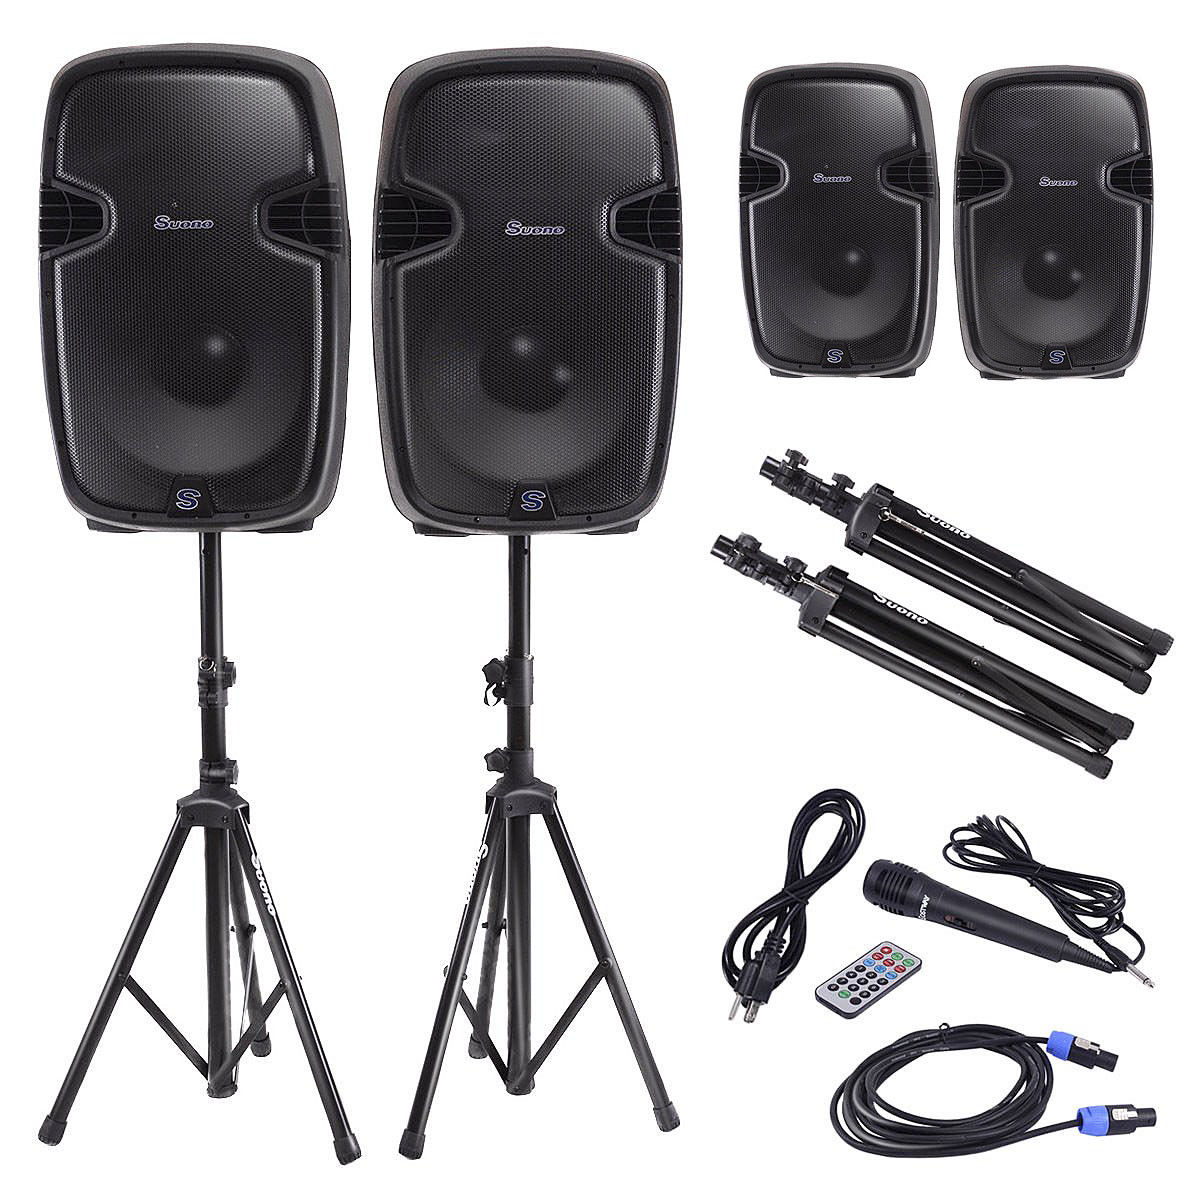 Costway Dual 12'' 2-way 2000W Powered Speakers w/ Bluetooth + Mic + Speaker Stands + Control + Cables